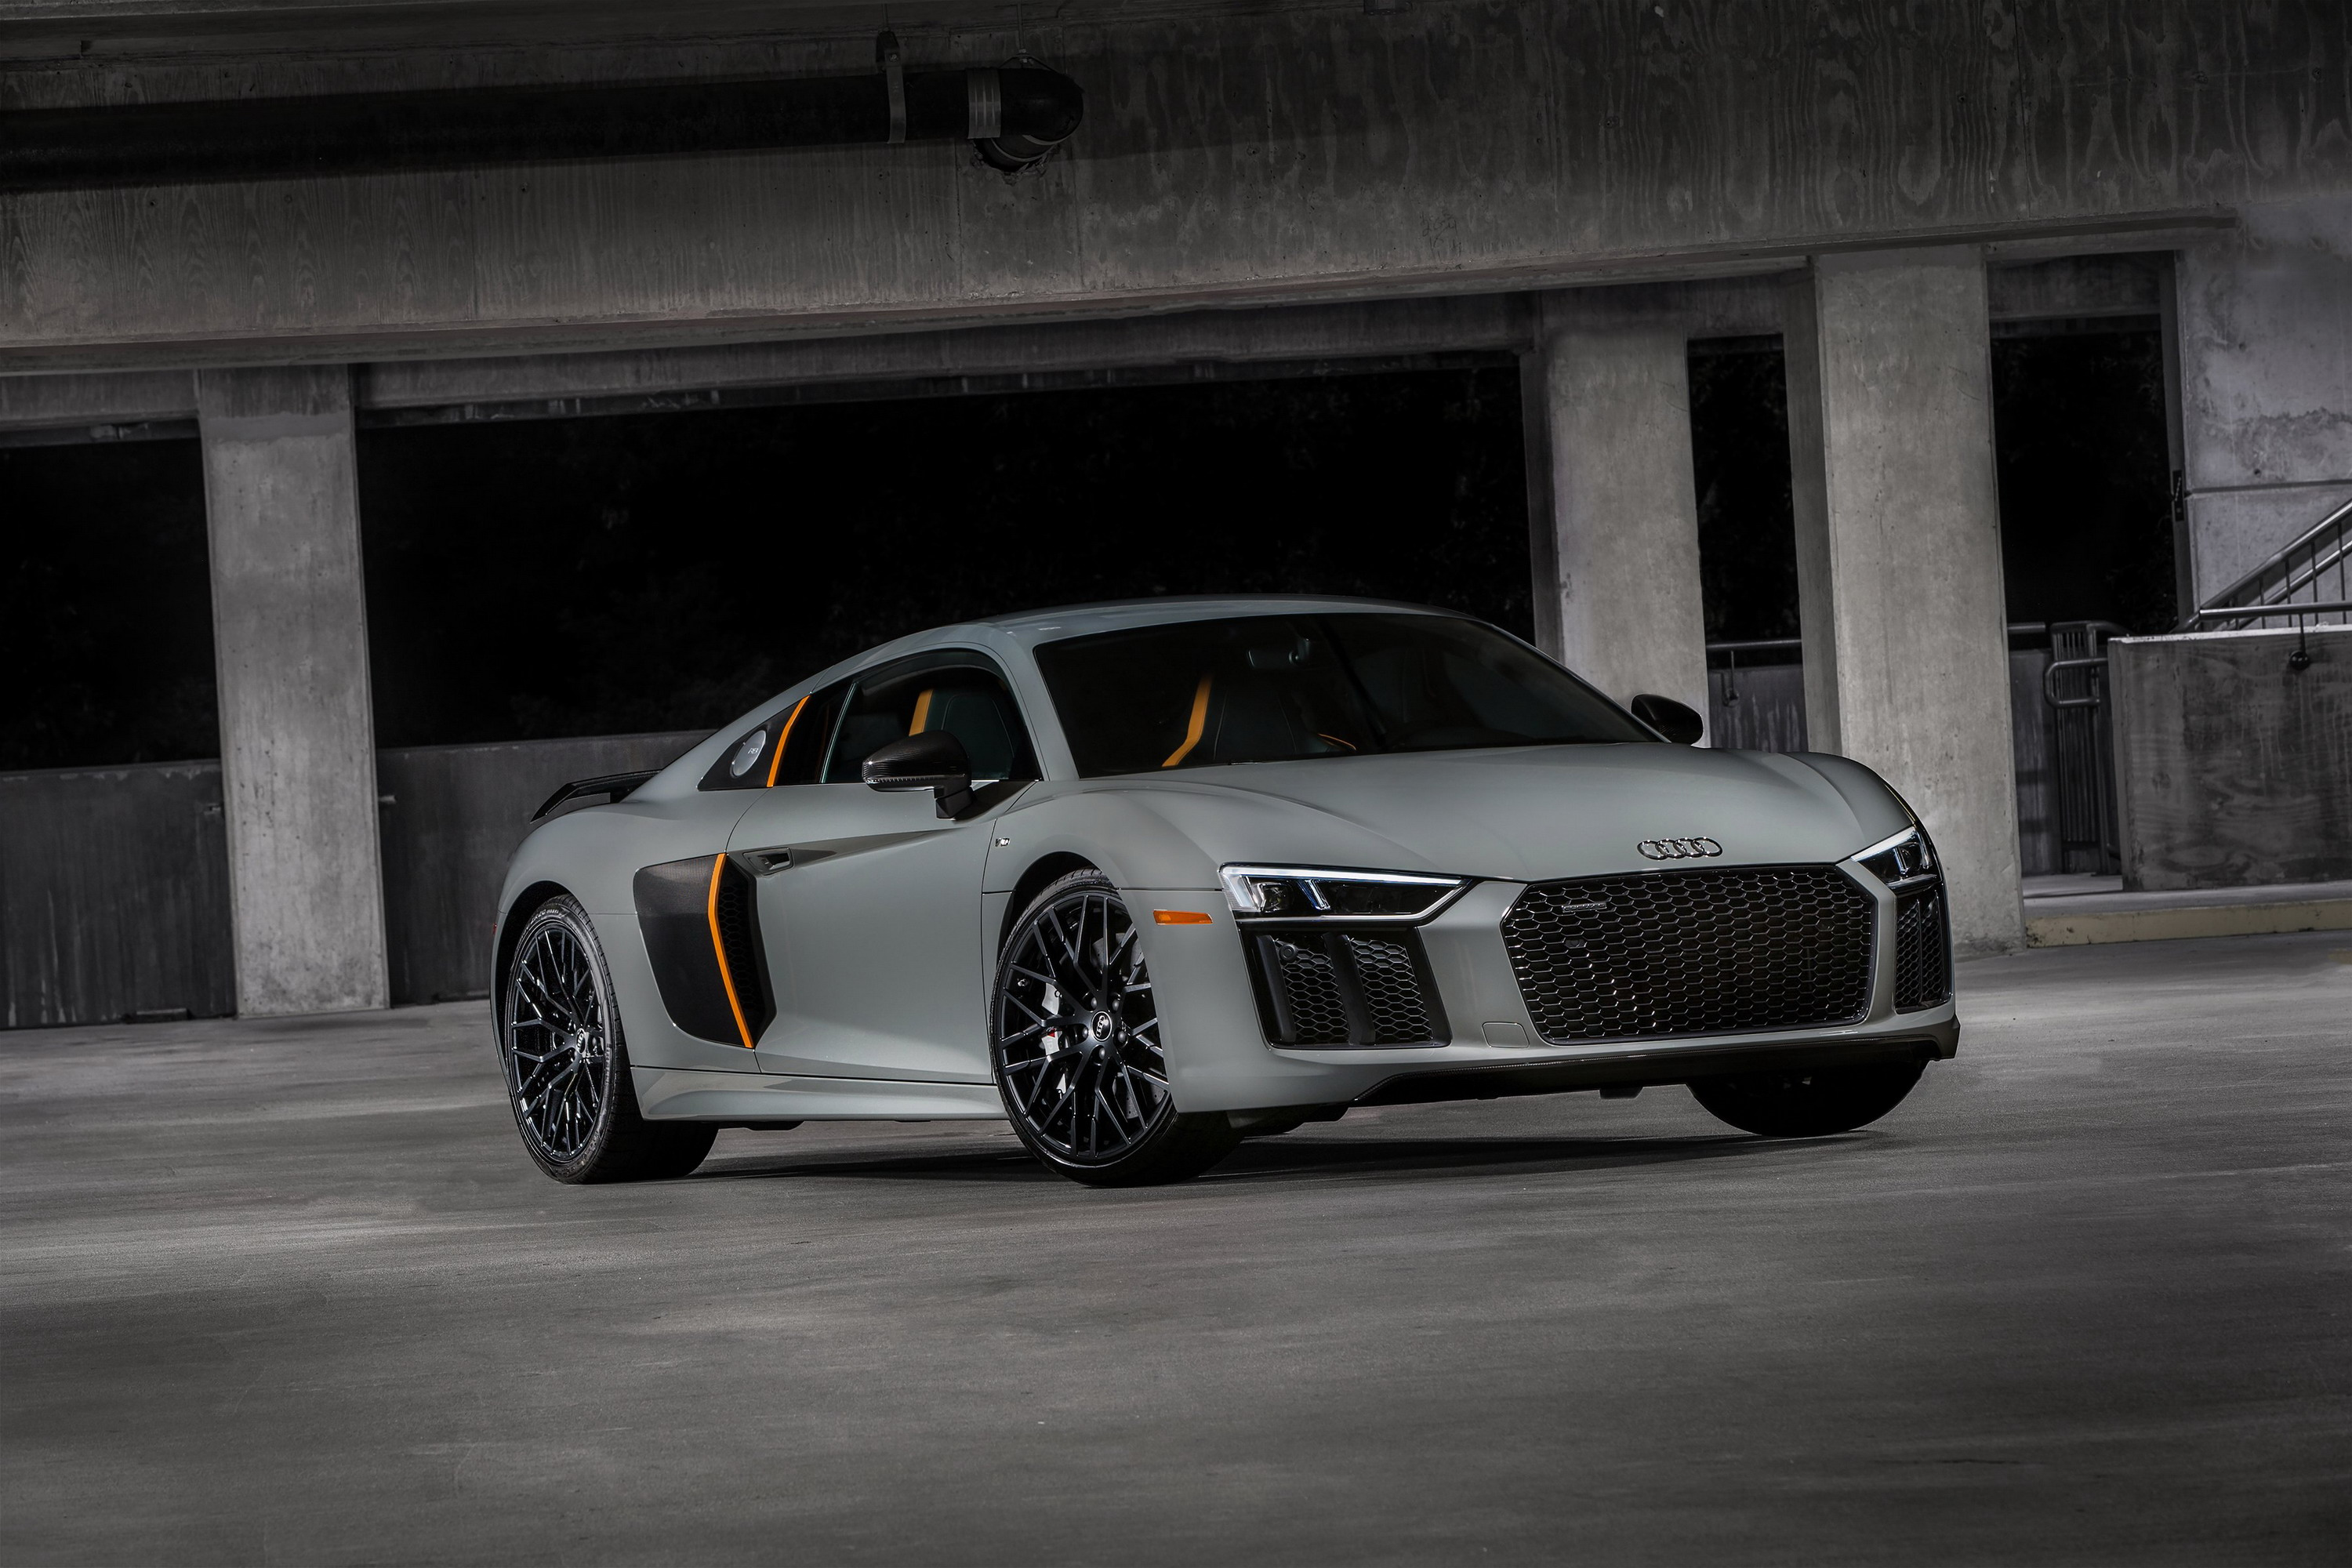 Audi R V Plus Exclusive Edition Top Speed Guawaco - Audi r8 top speed